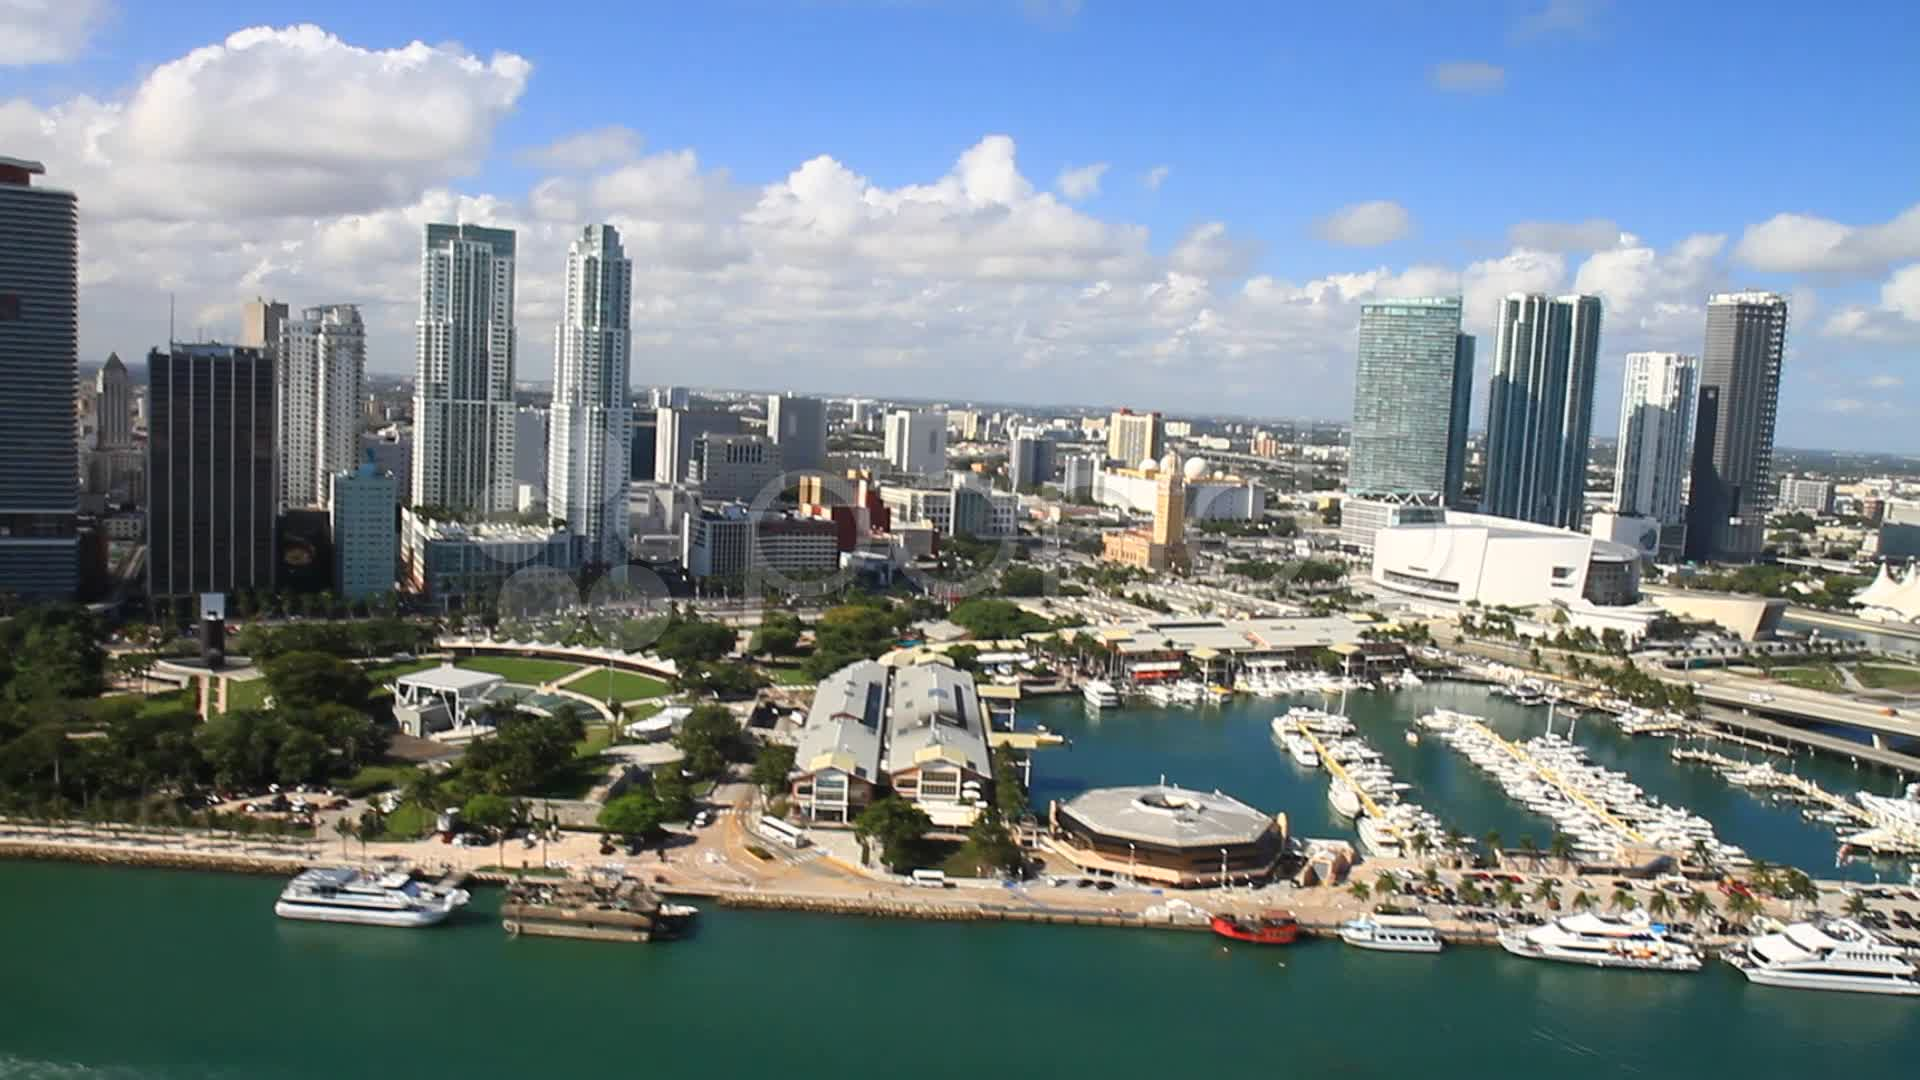 Hd Wallpaper Cars Free Download Aerial View Of Bayside Marketplace Miami Fl Stock Video